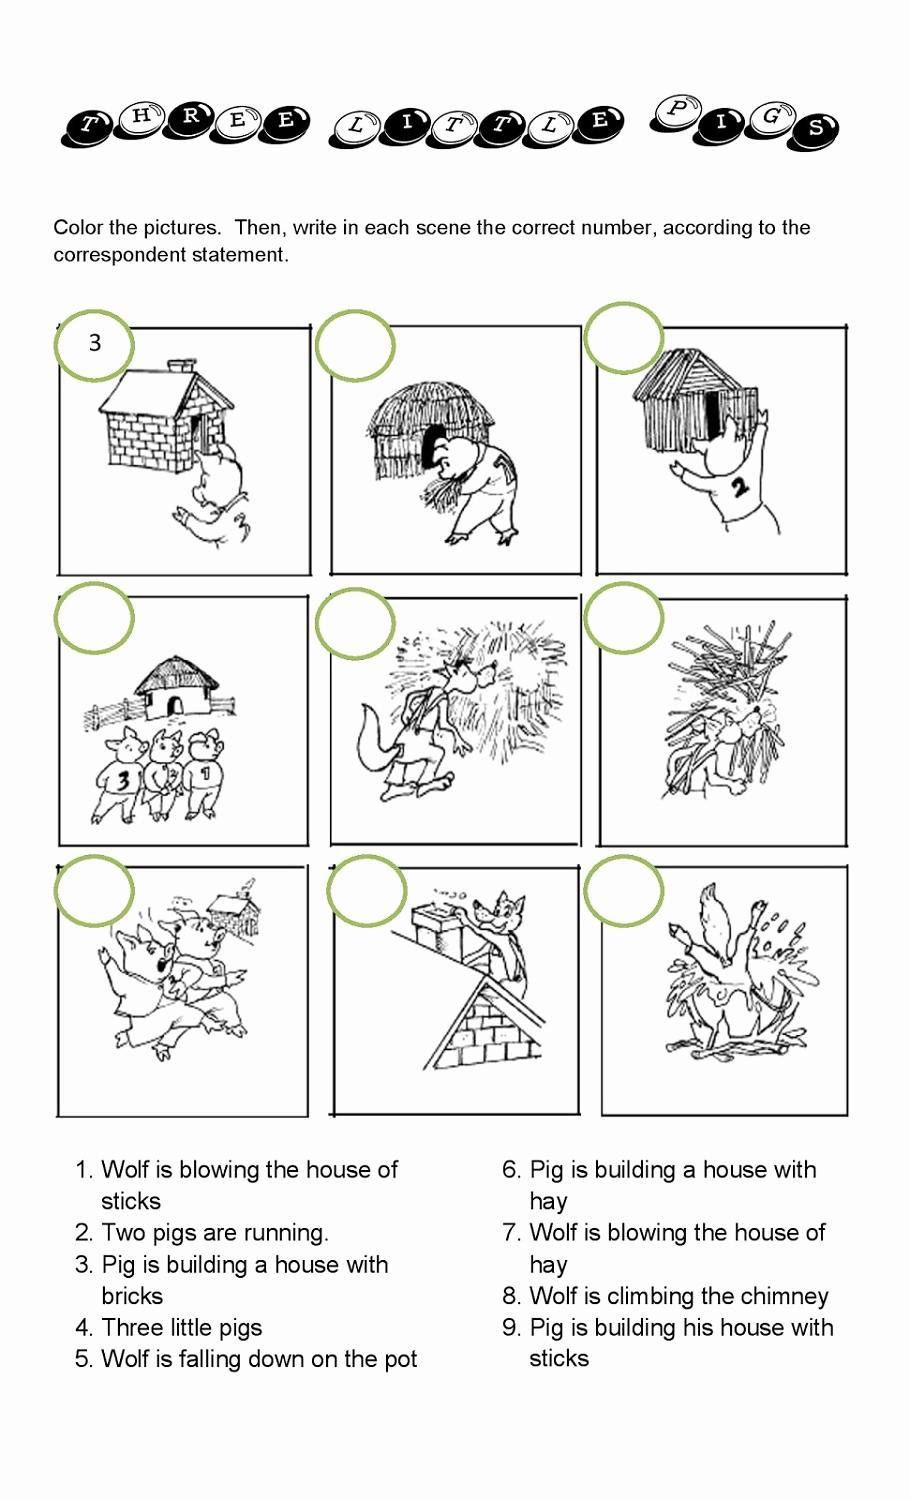 Three Little Pigs Worksheets Lovely the Three Little Pigs Worksheets